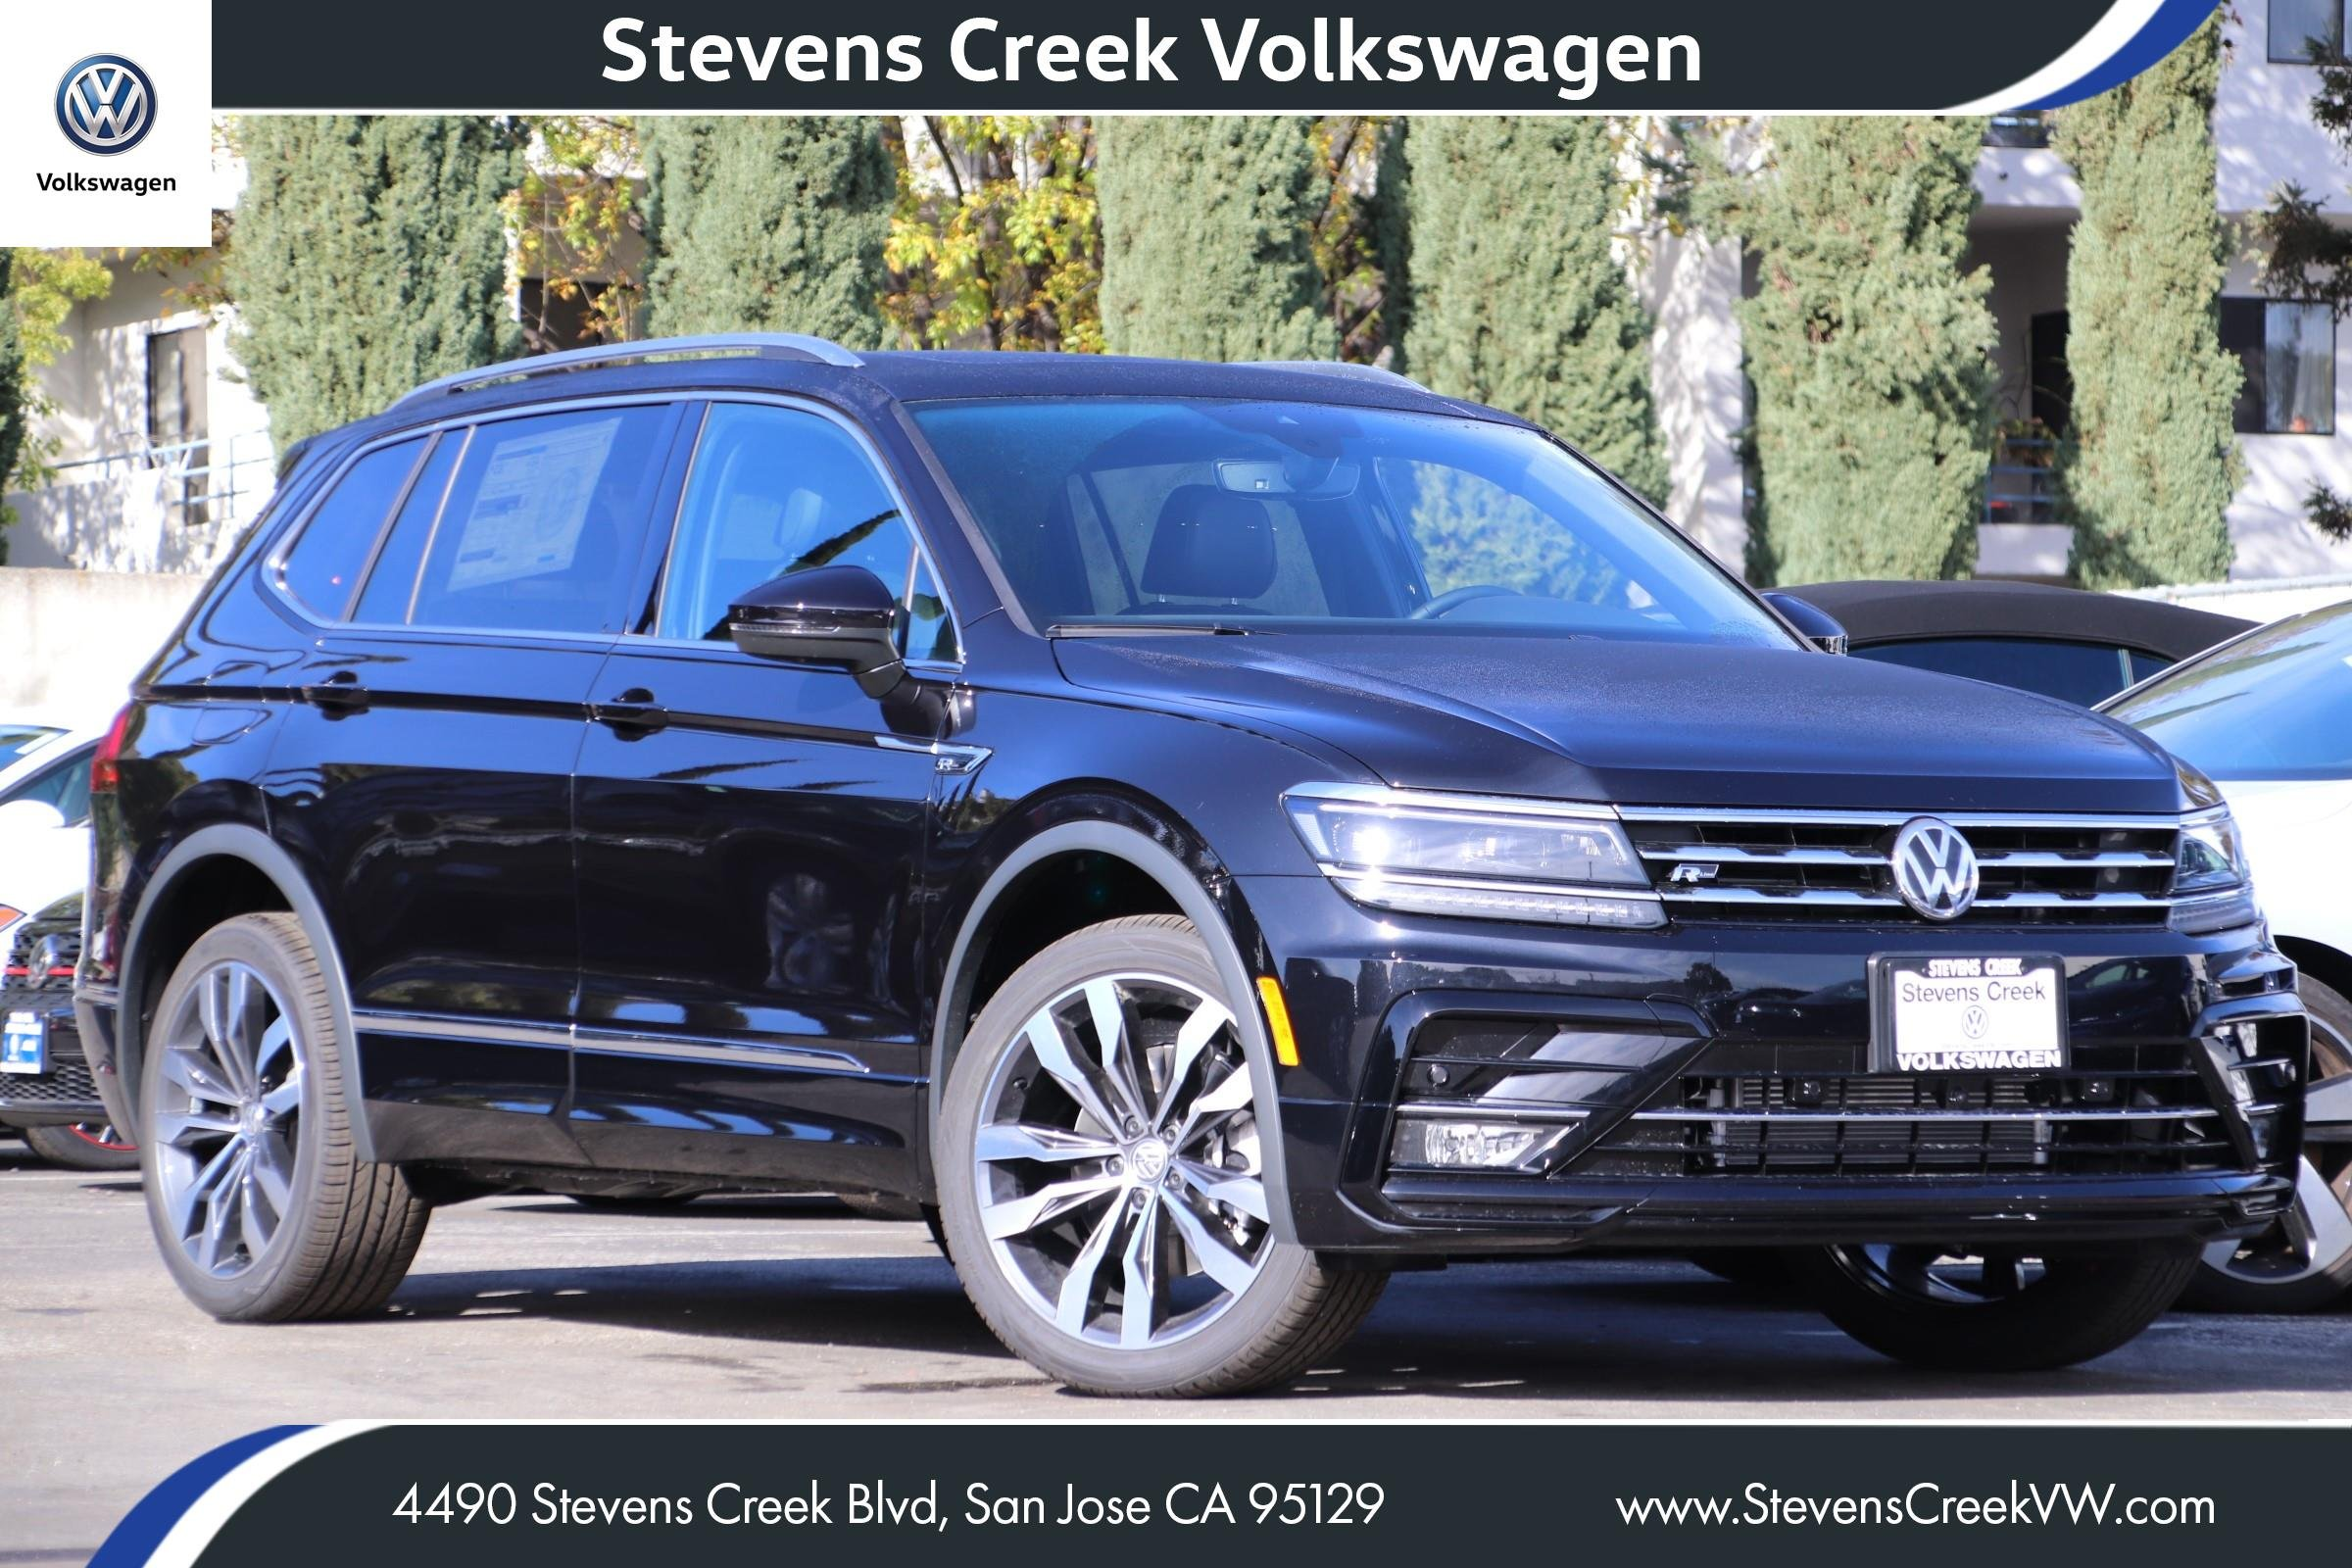 New 2020 Volkswagen Tiguan SEL Premium R-Line With Navigation & AWD VIN 3VV4B7AXXLM089028 MSRP $41,110